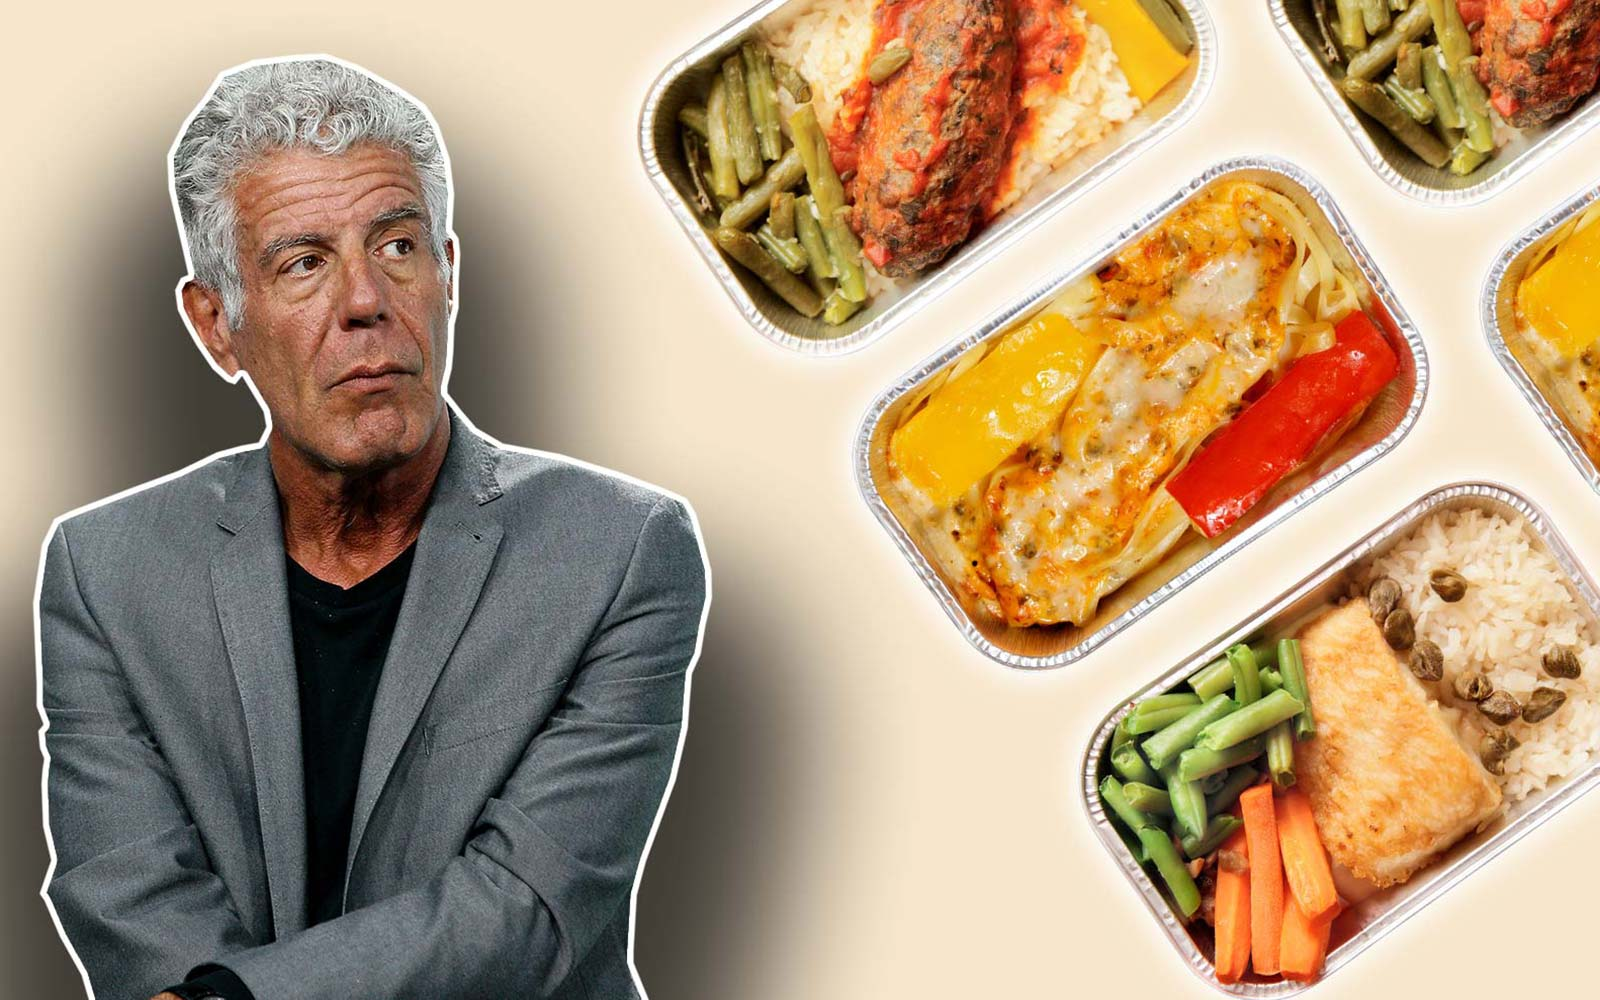 Anthony Bourdain Sleep Airplane Food Flight Meal Service Tip